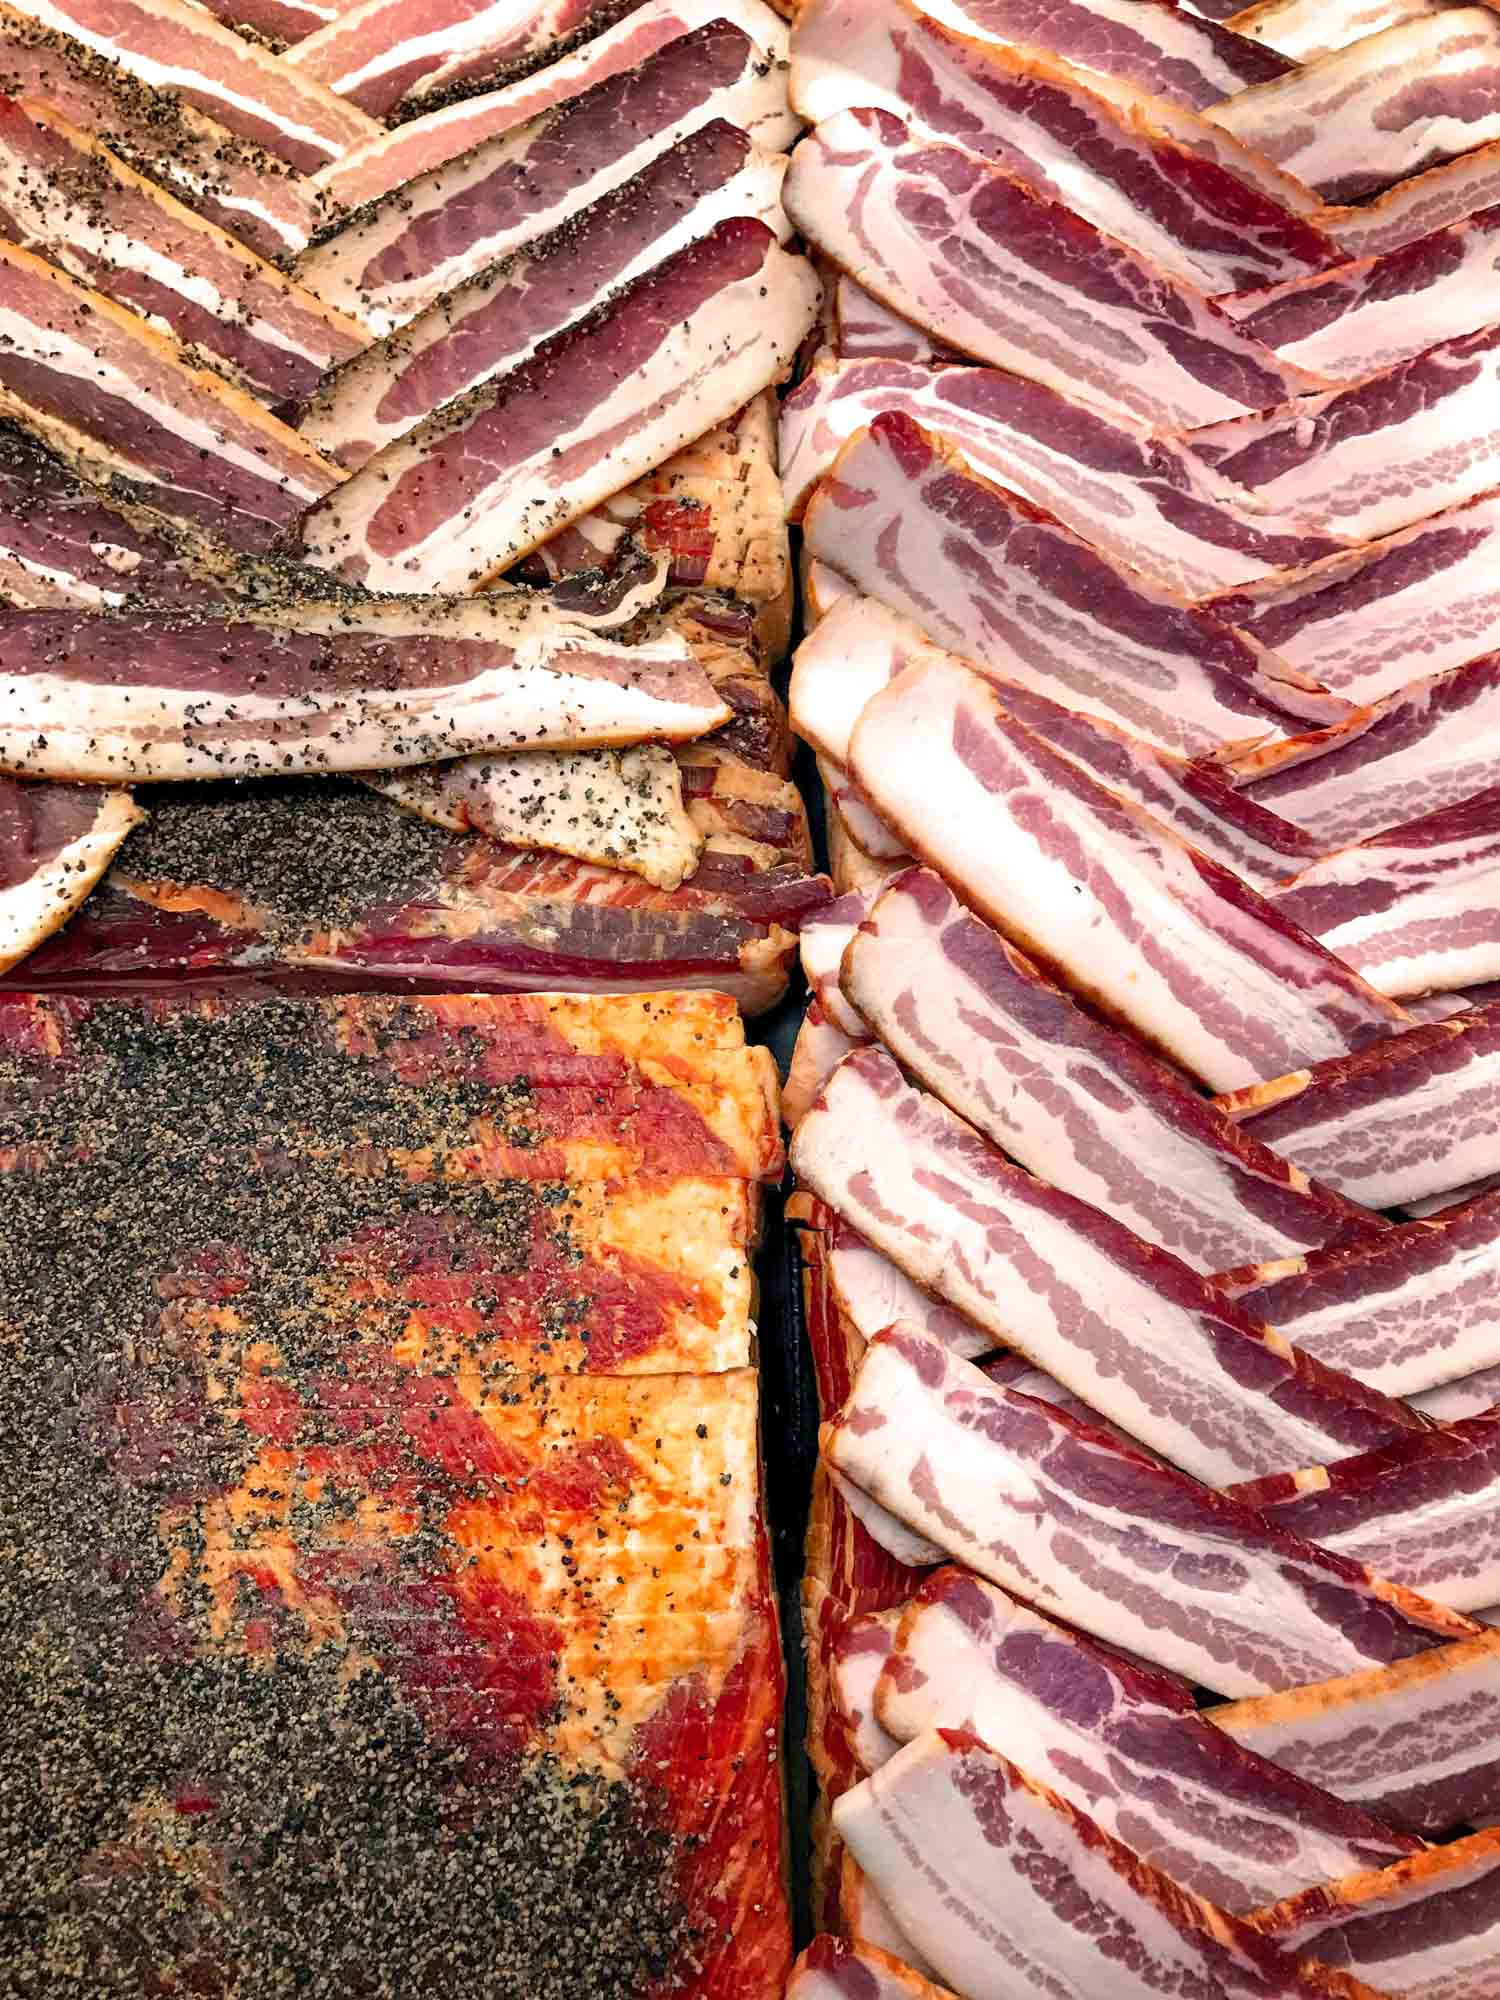 Cured pork belly or pancetta recipe with black pepper